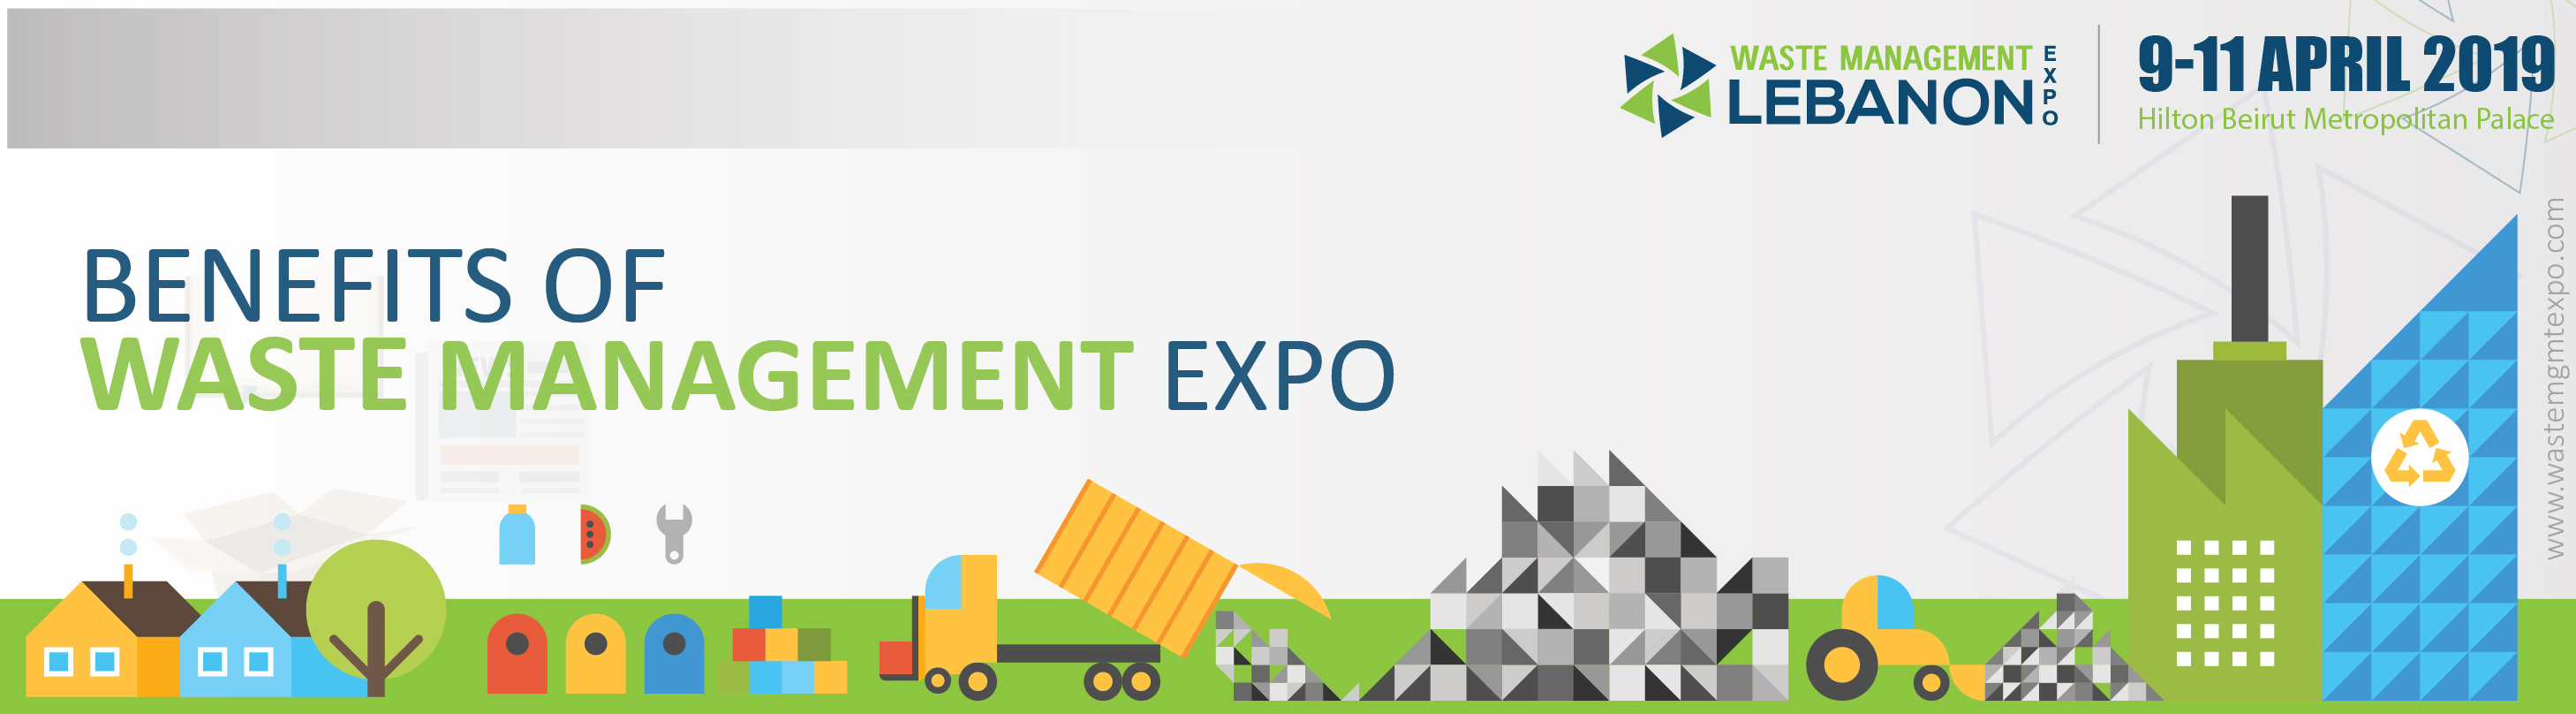 Waste Expo in Lebanon